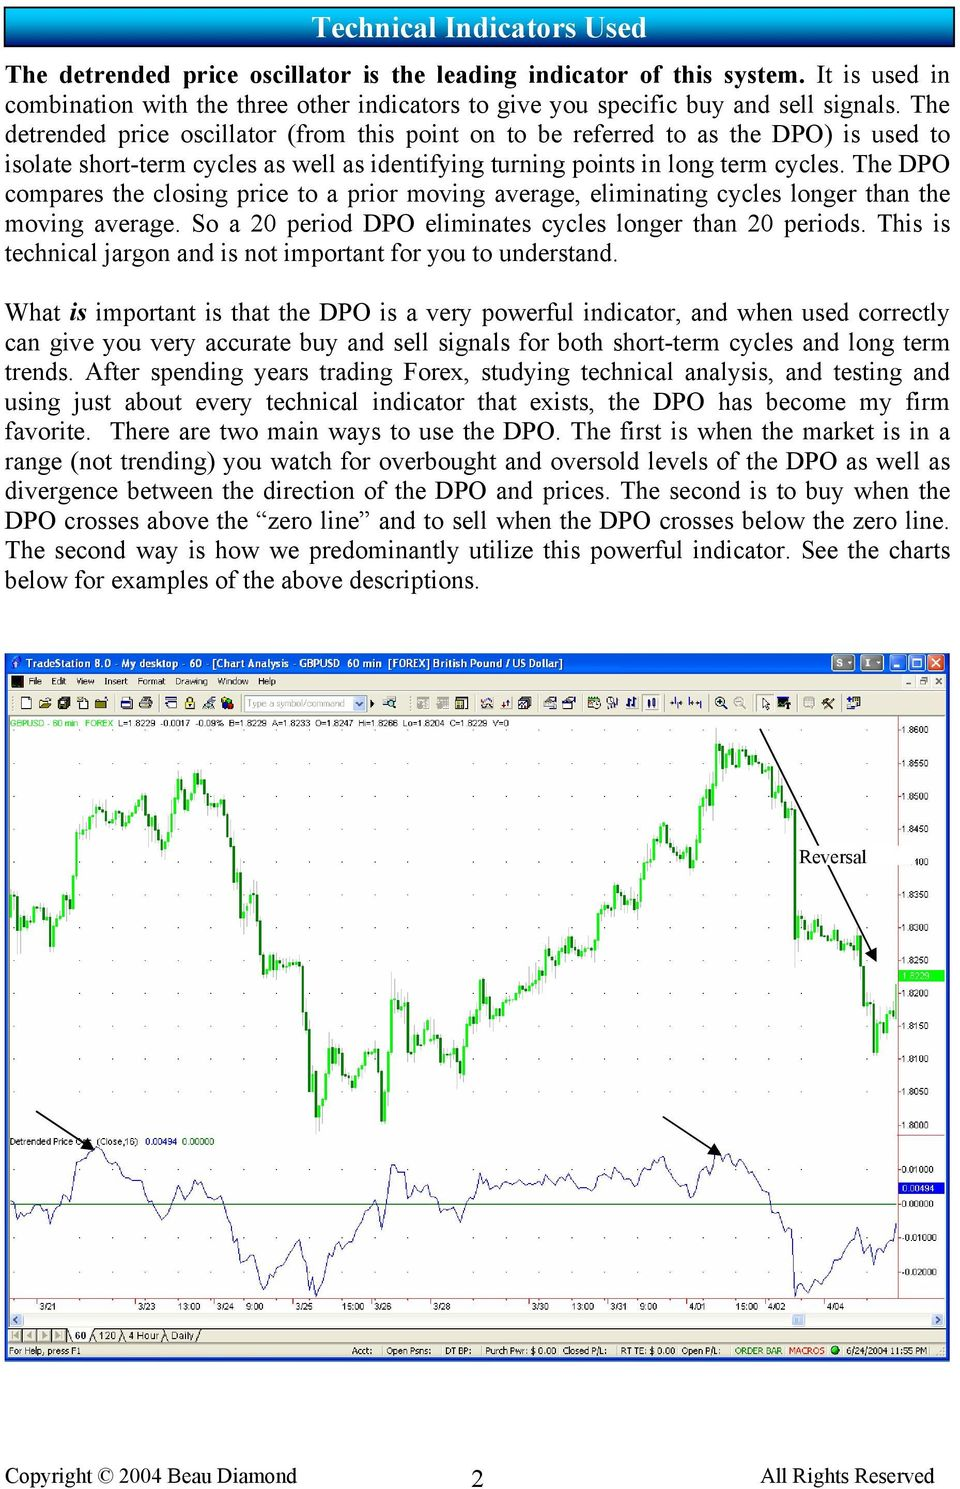 The DPO compares the closing price to a prior moving average, eliminating cycles longer than the moving average. So a 20 period DPO eliminates cycles longer than 20 periods.